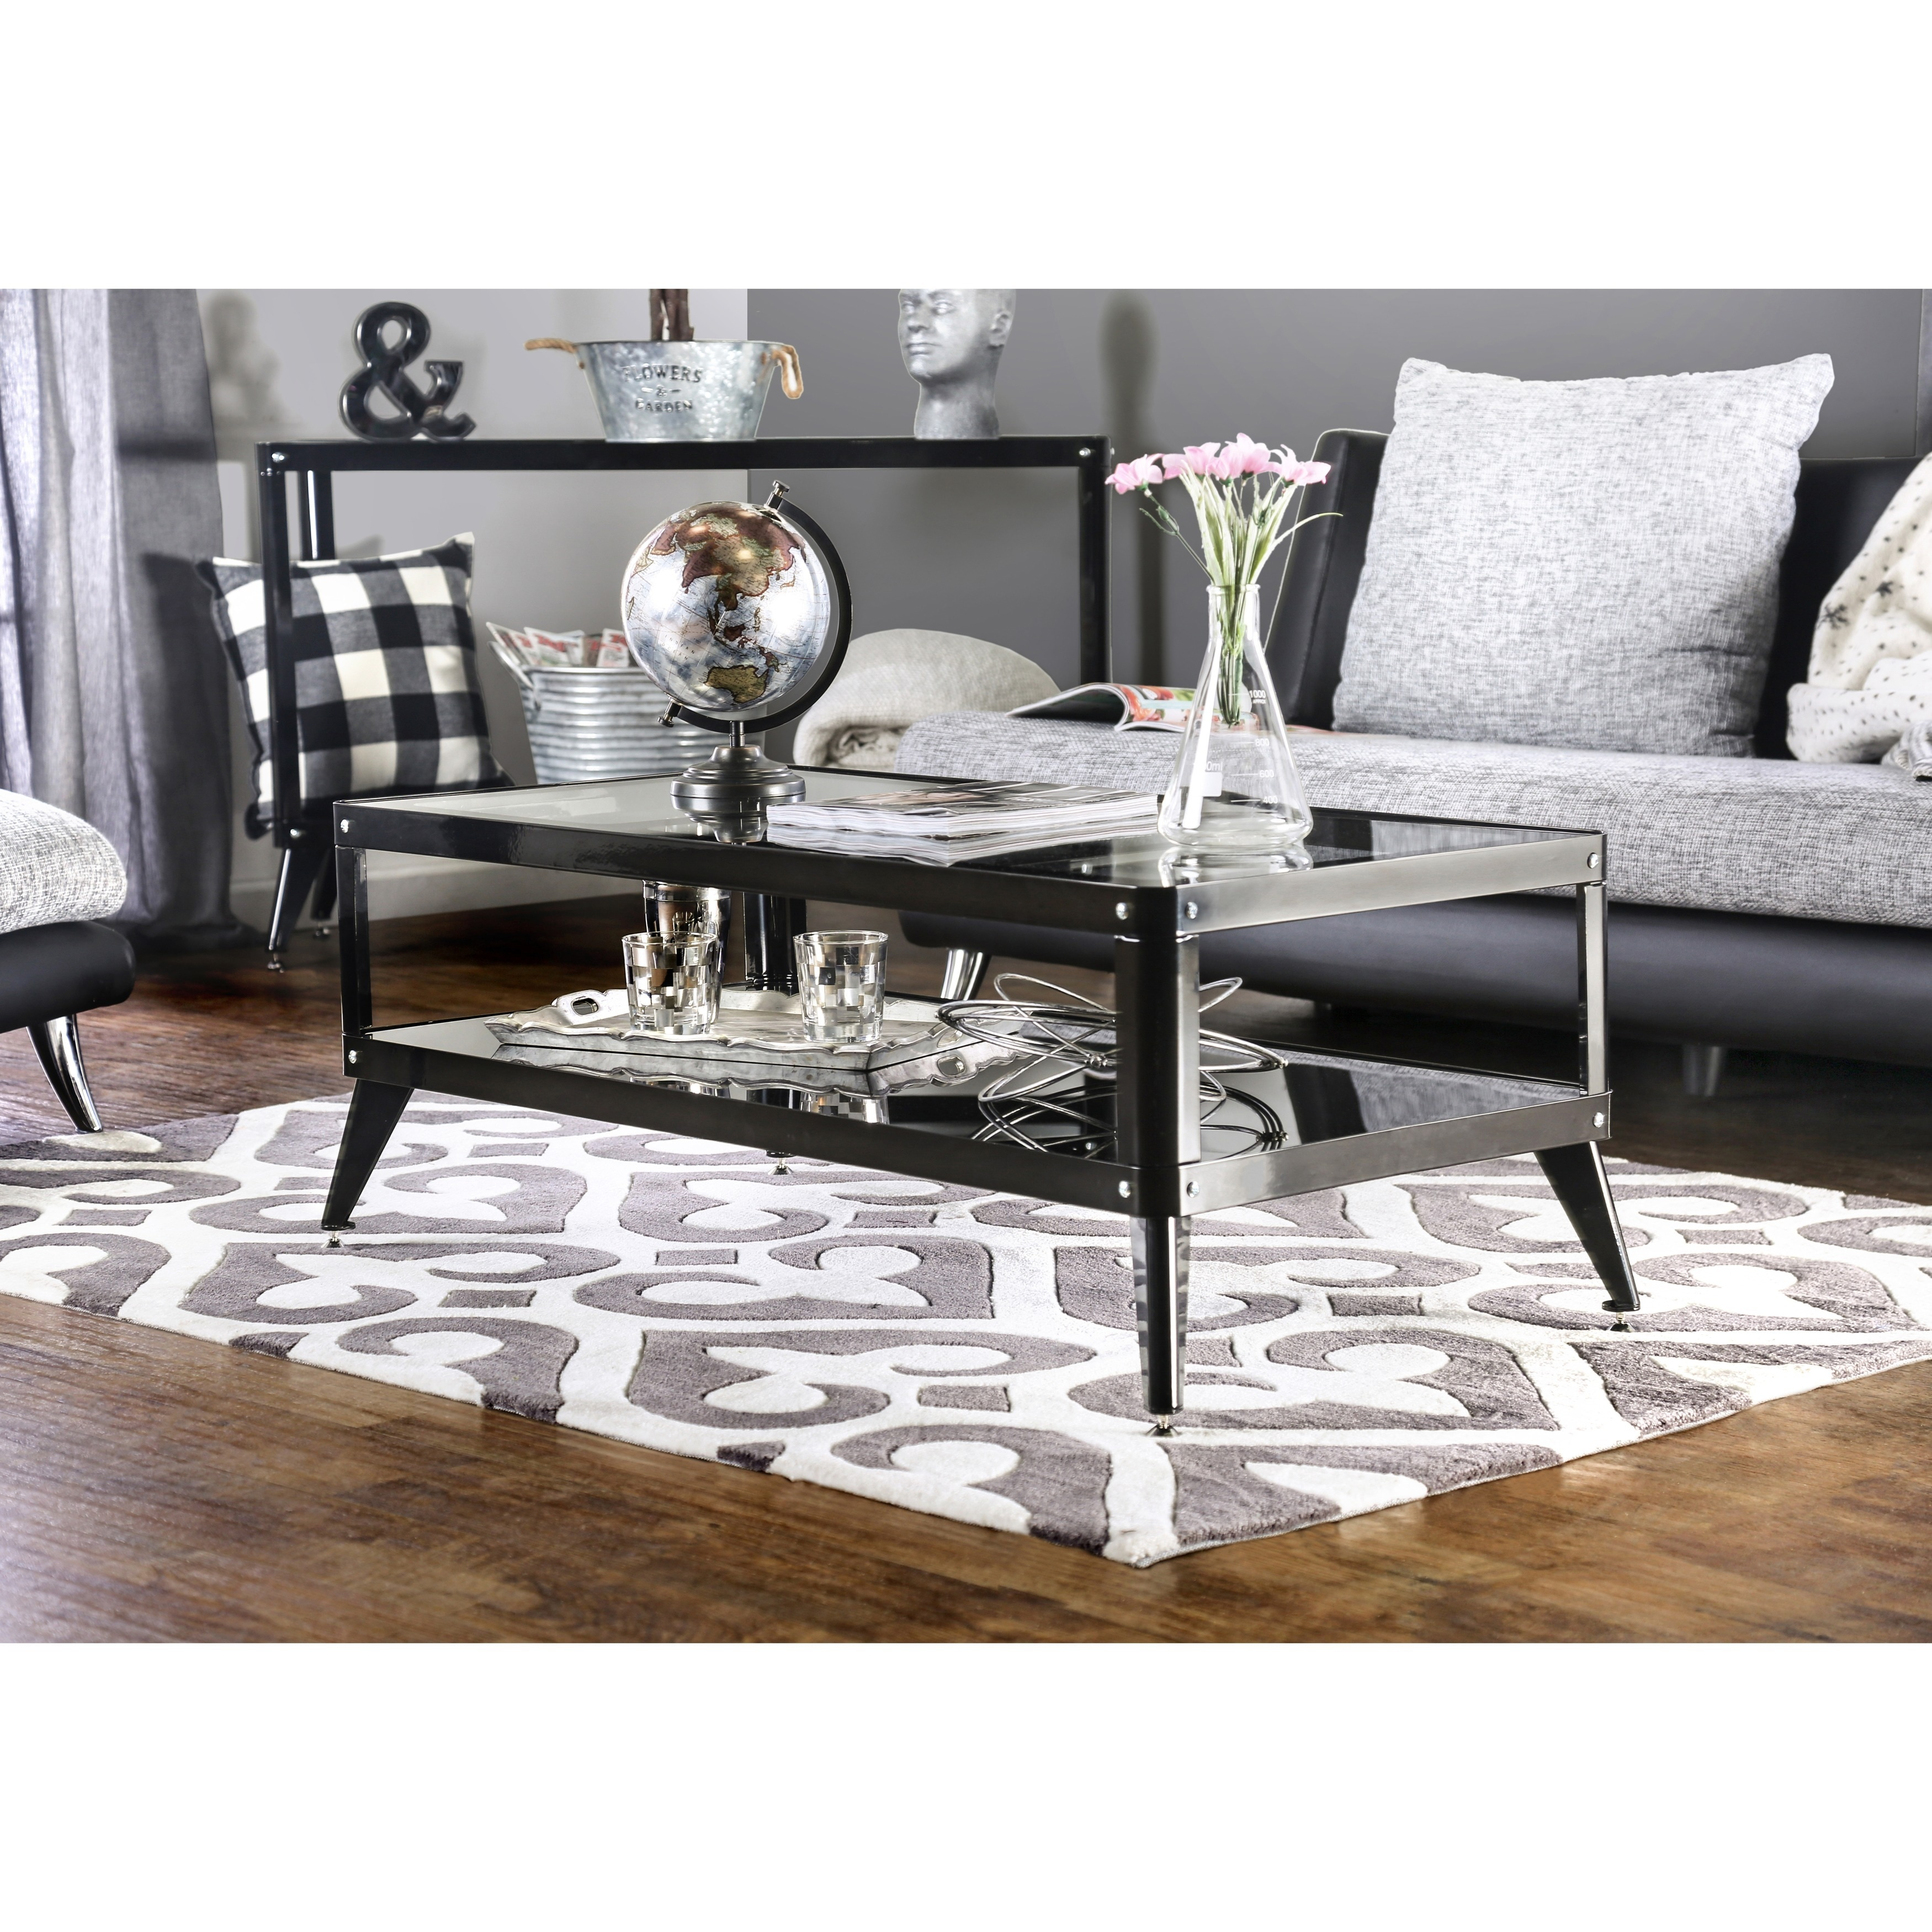 Shop Furniture Of America Linden Modern Glass Top Metal Coffee Table   Free  Shipping Today   Overstock.com   11101659